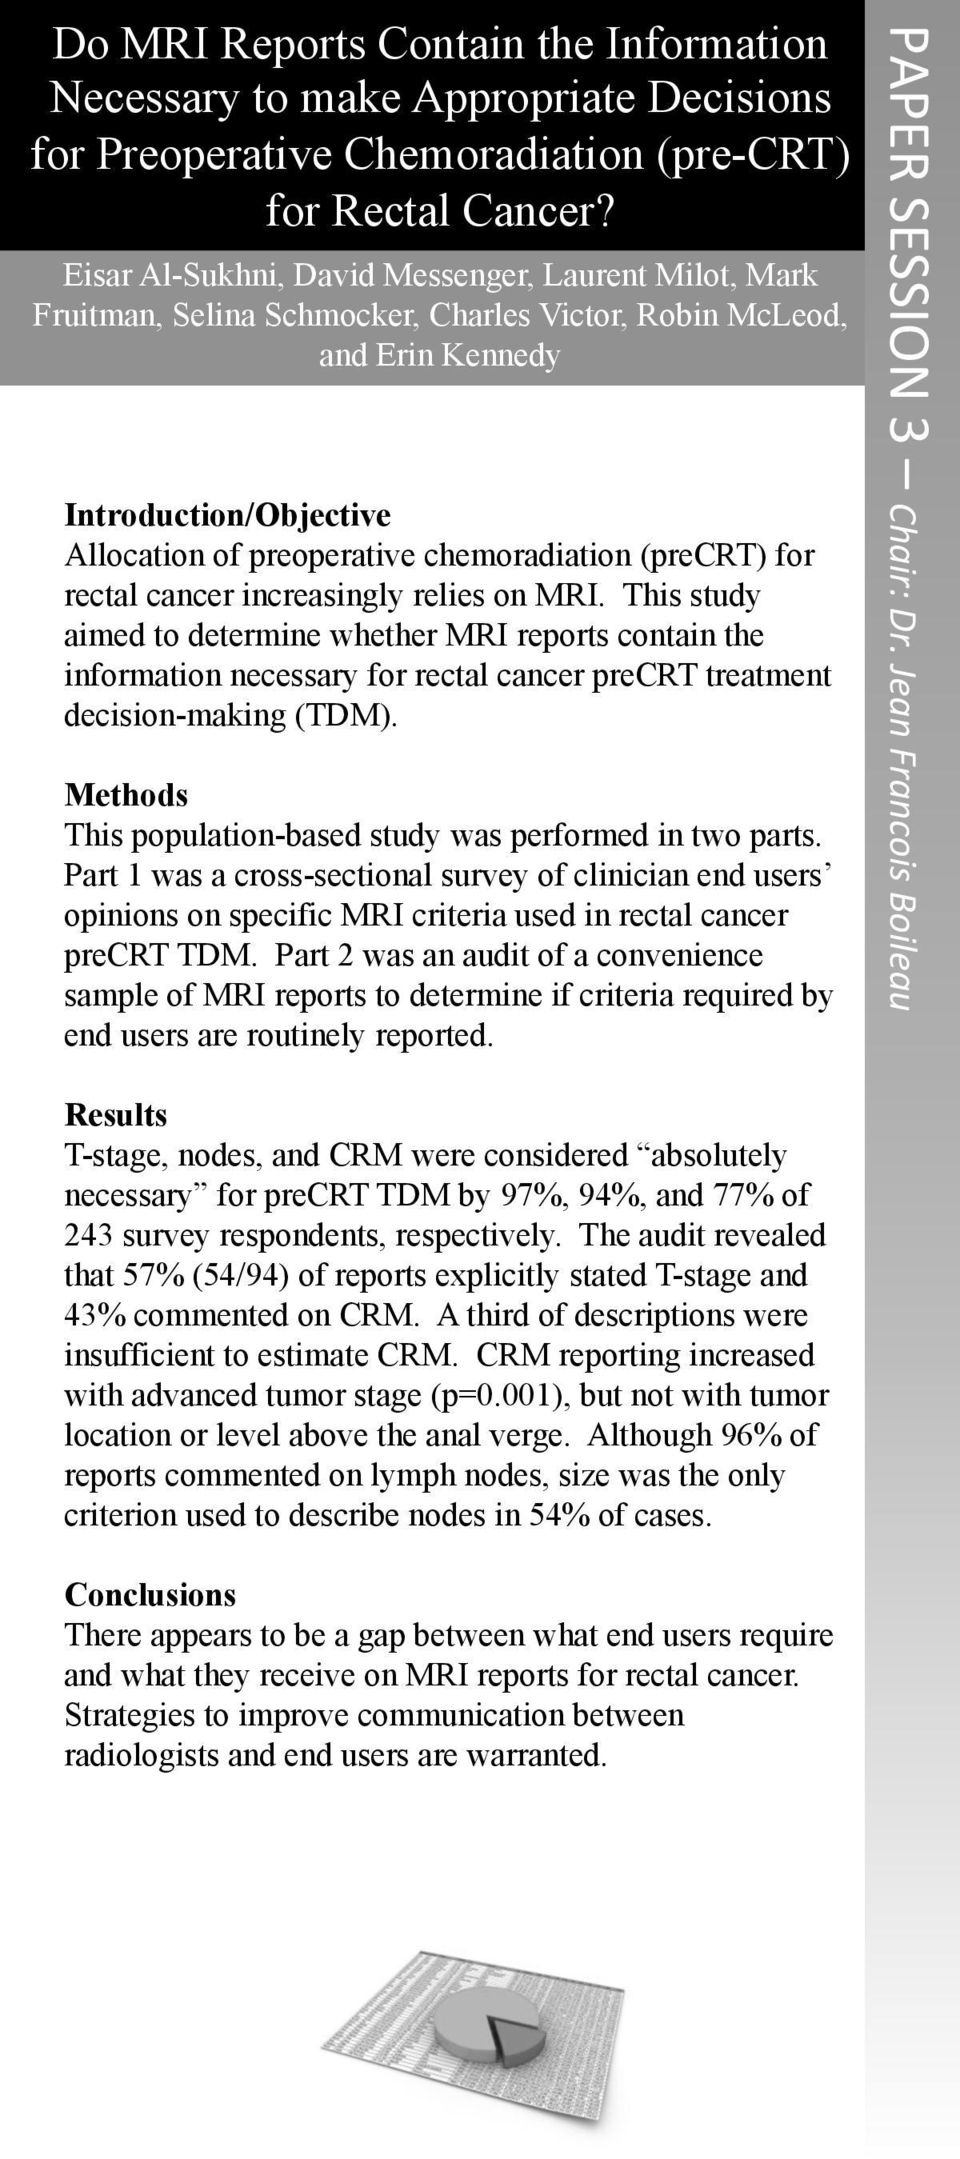 (precrt) for rectal cancer increasingly relies on MRI. This study aimed to determine whether MRI reports contain the information necessary for rectal cancer precrt treatment decision-making (TDM).